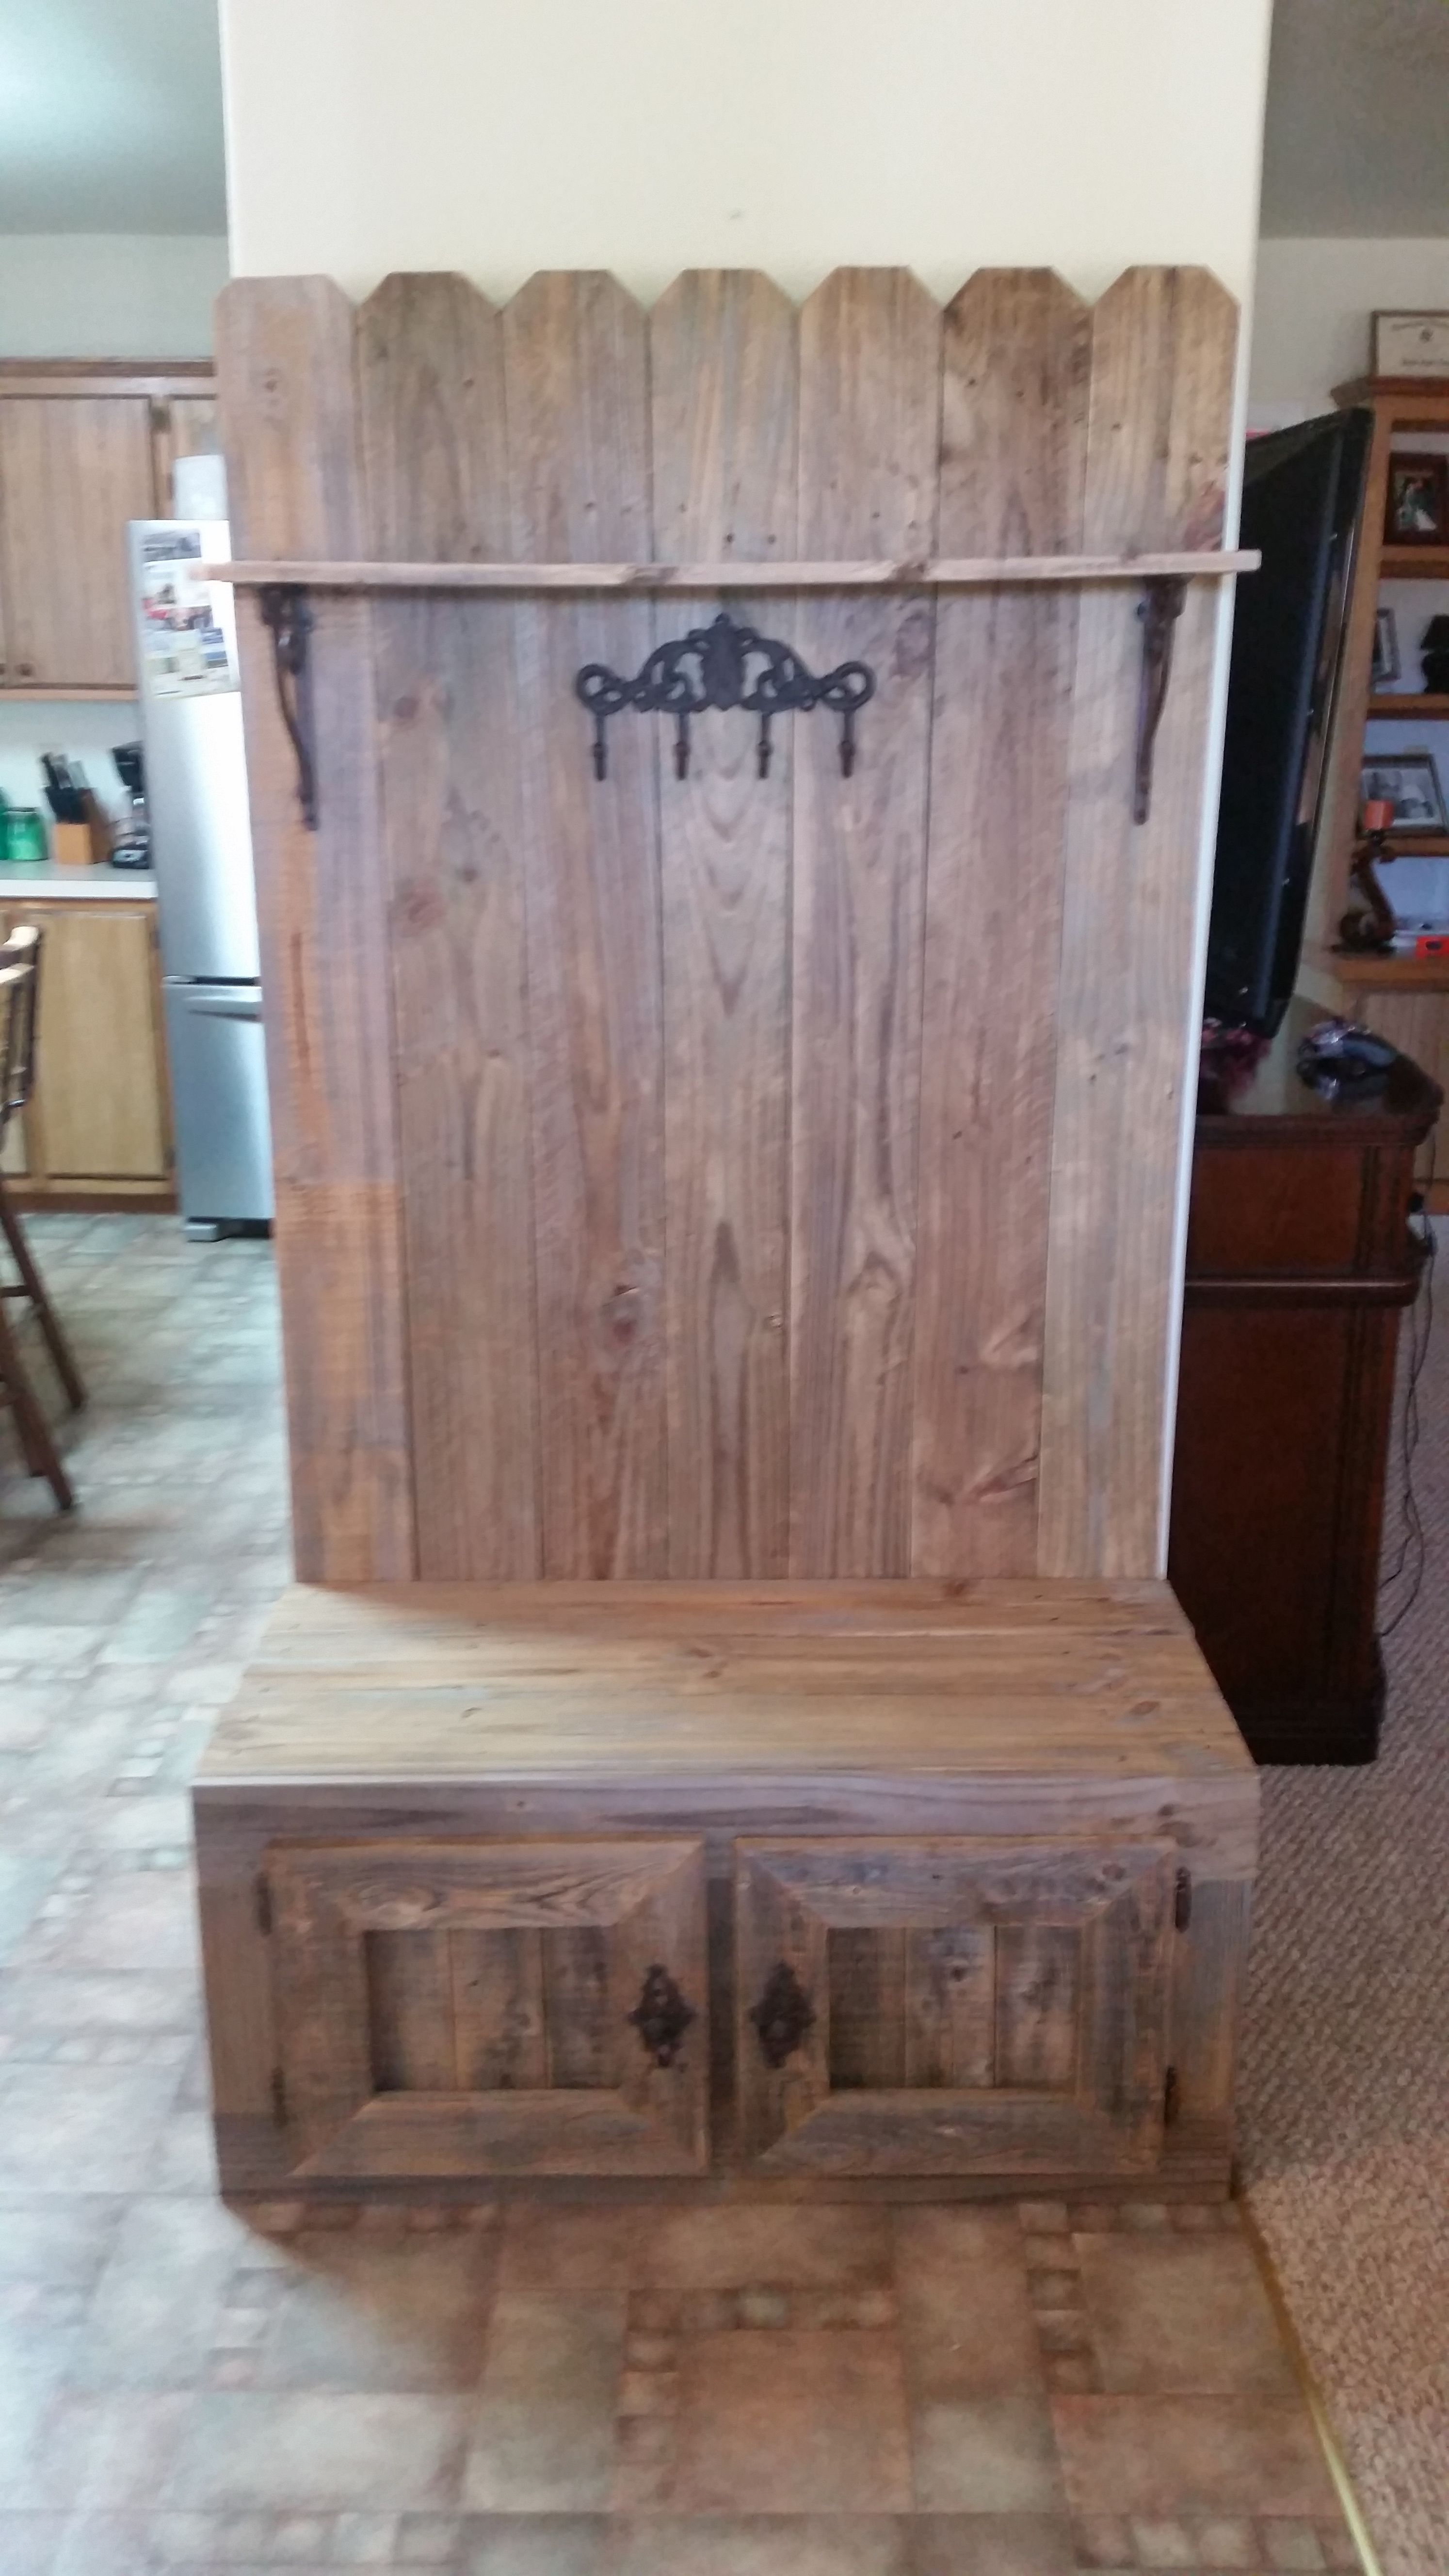 hals woodworking Aqua coat wood finishes, environmentally friendly top coats and sanding sealers.